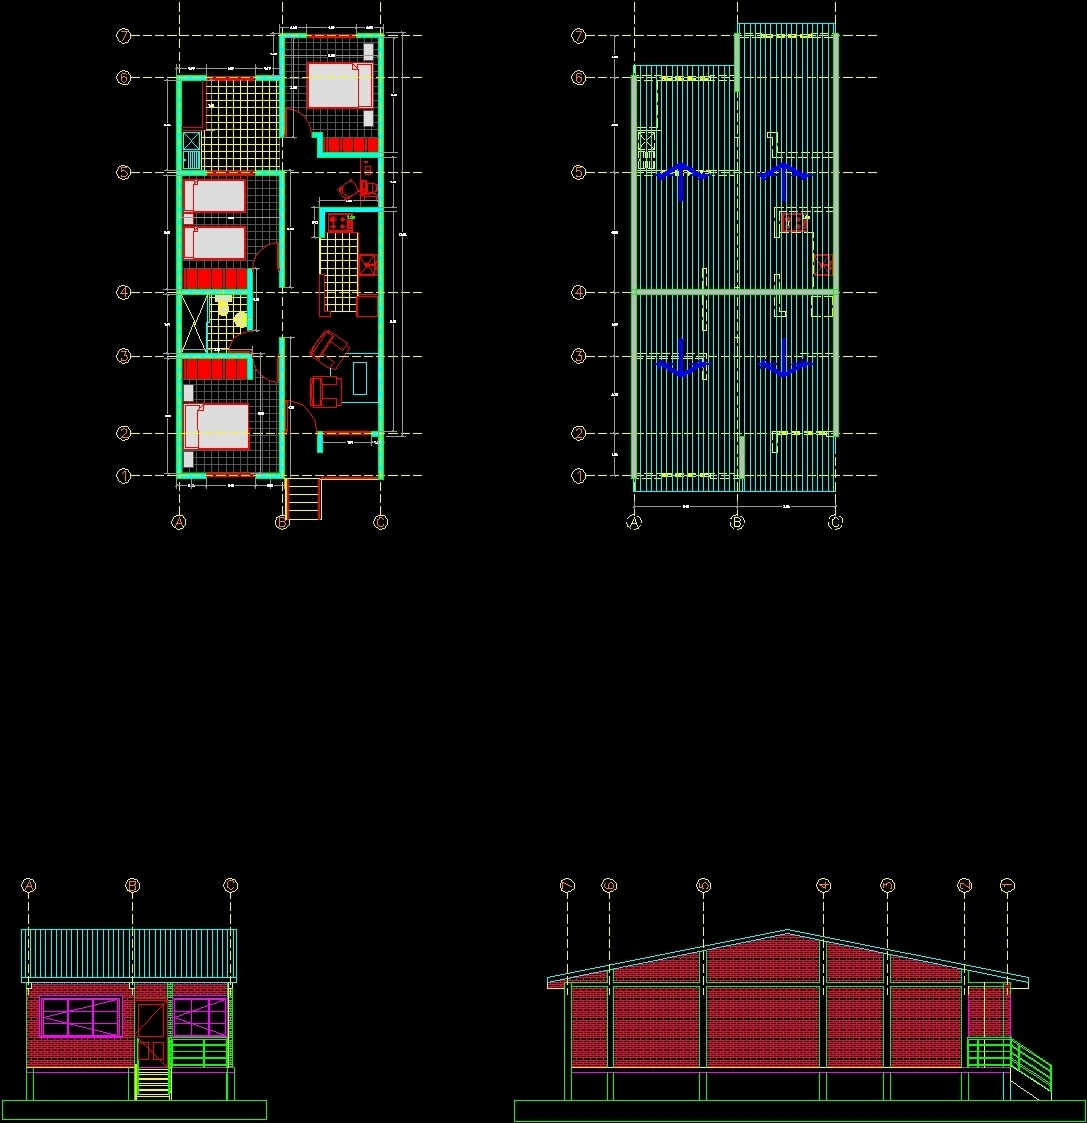 Social Interest Housing Dwg Block For Autocad Designs Cad # Muebles Gimnasio Dwg